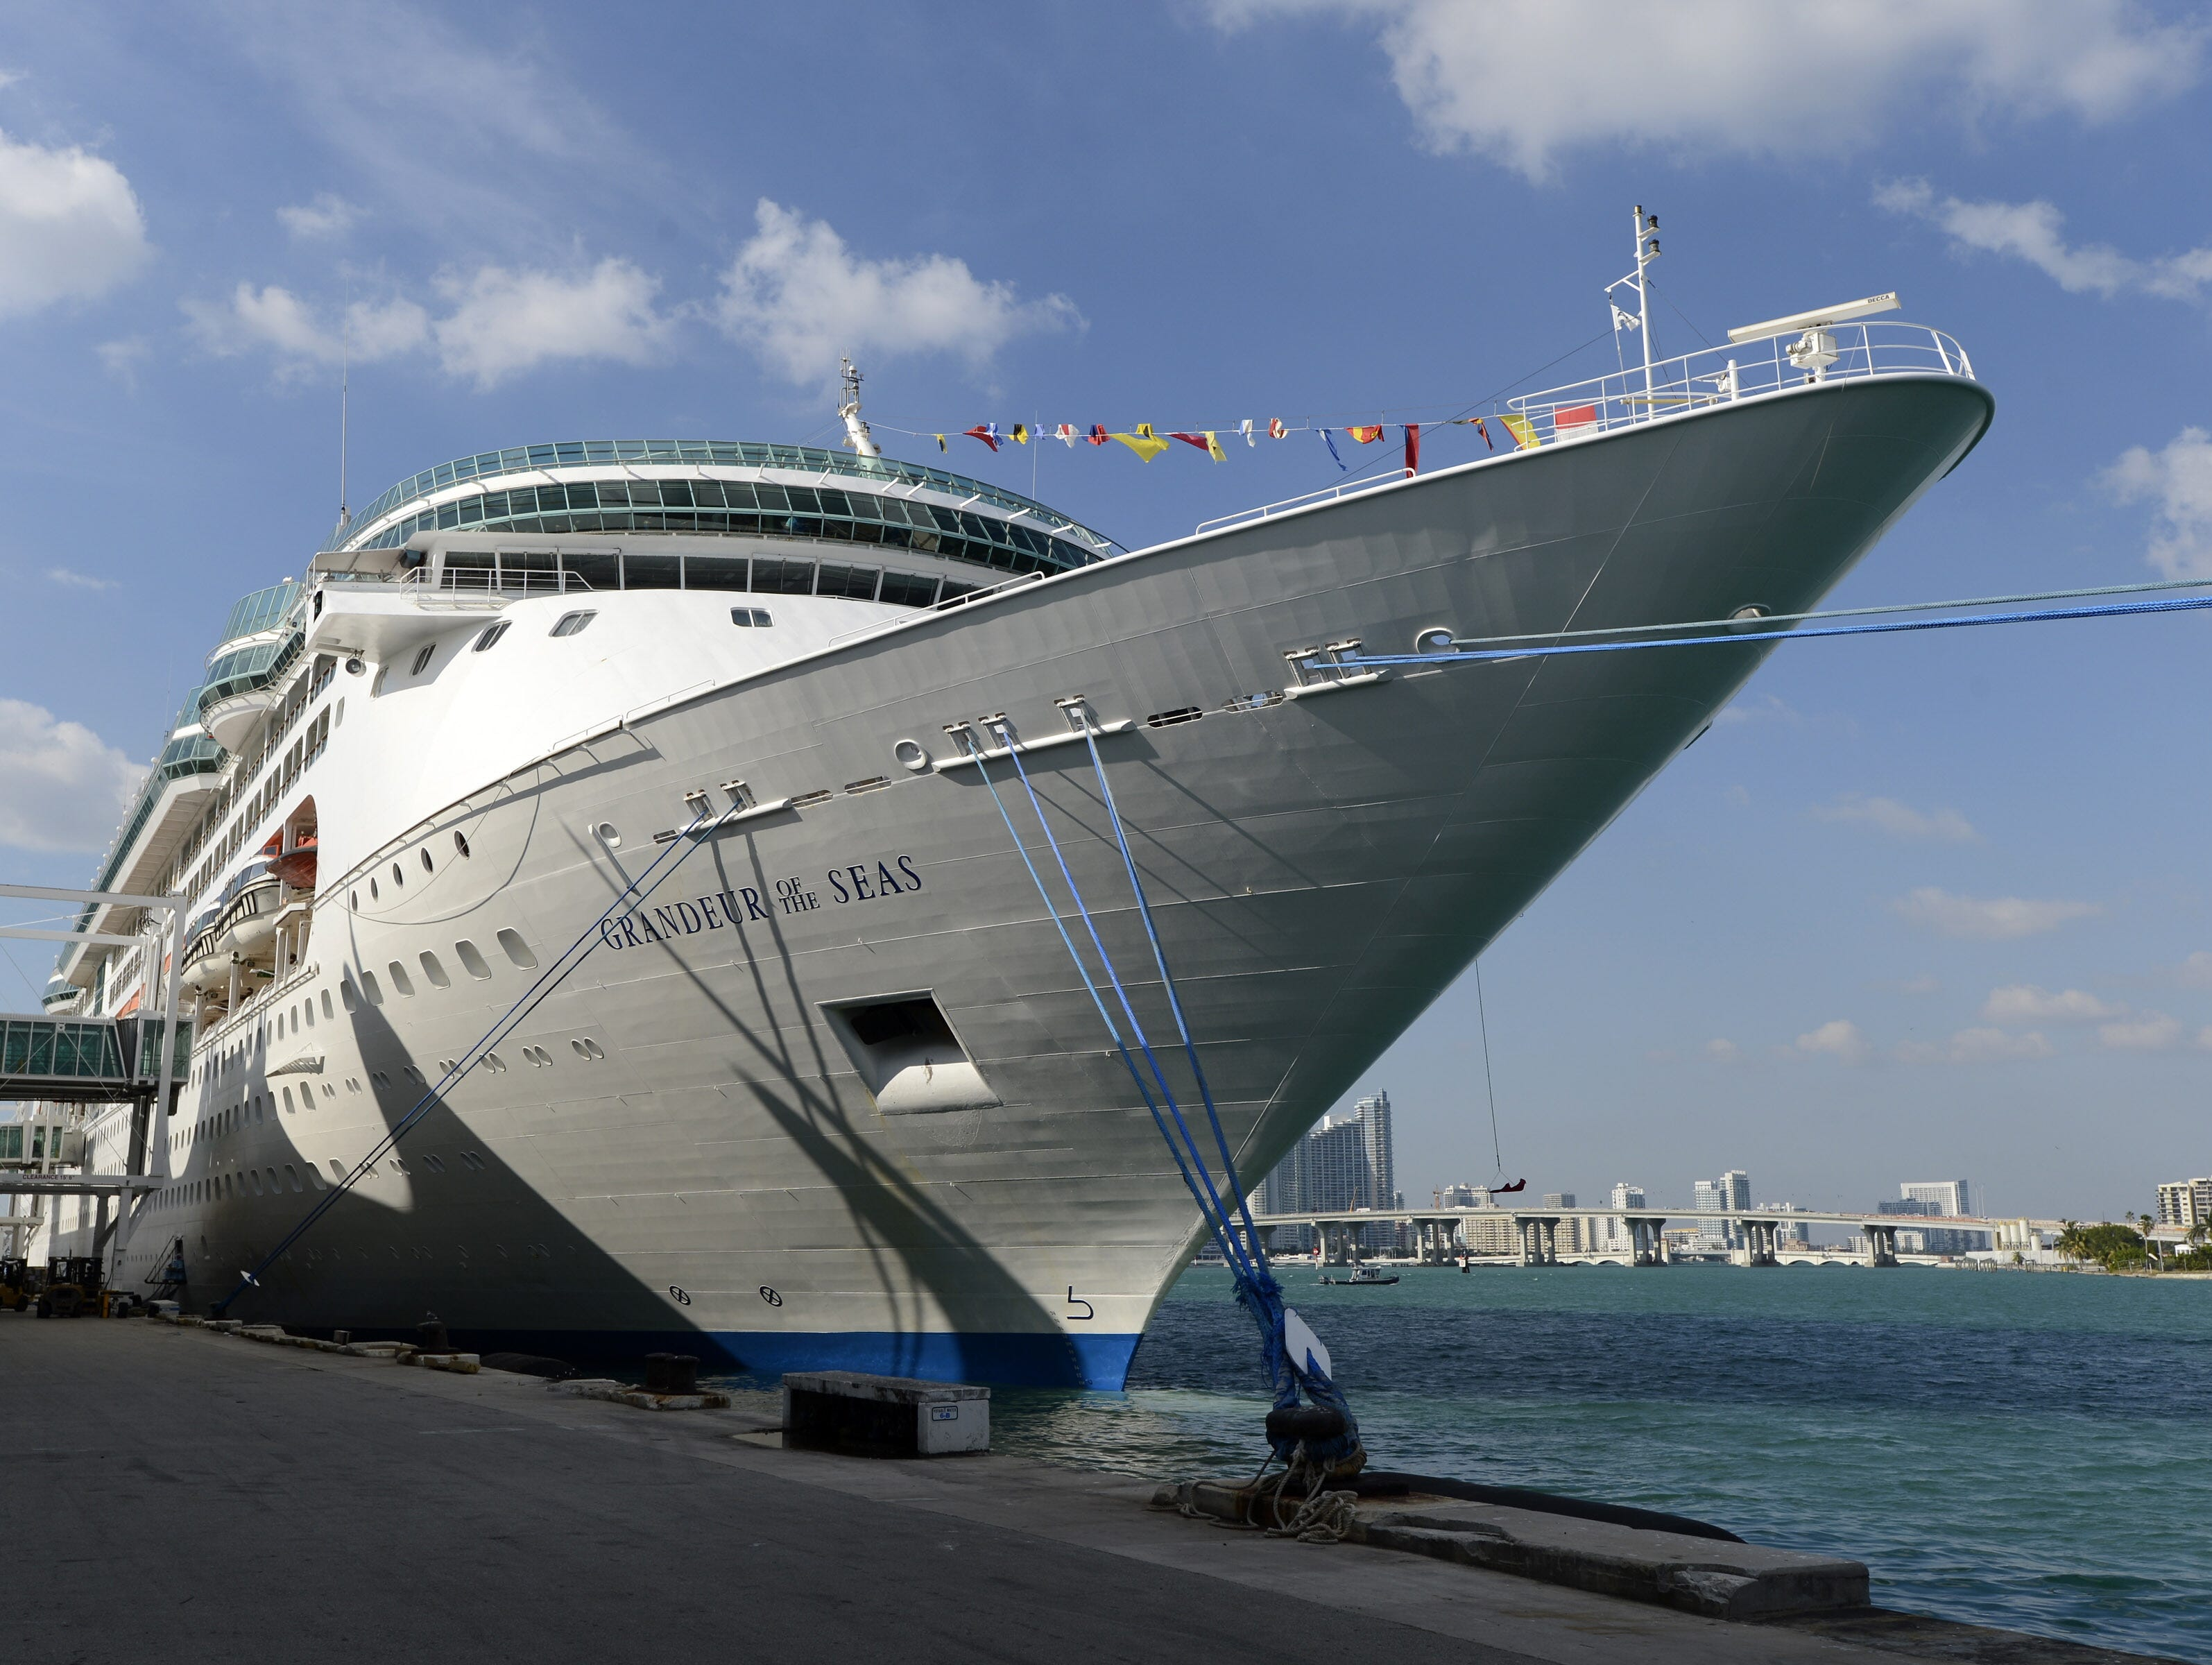 Originally built in 1996, Royal Caribbean's Grandeur of the Seas underwent a $48 million makeover in 2012 that brought new eateries, entertainment features and more.